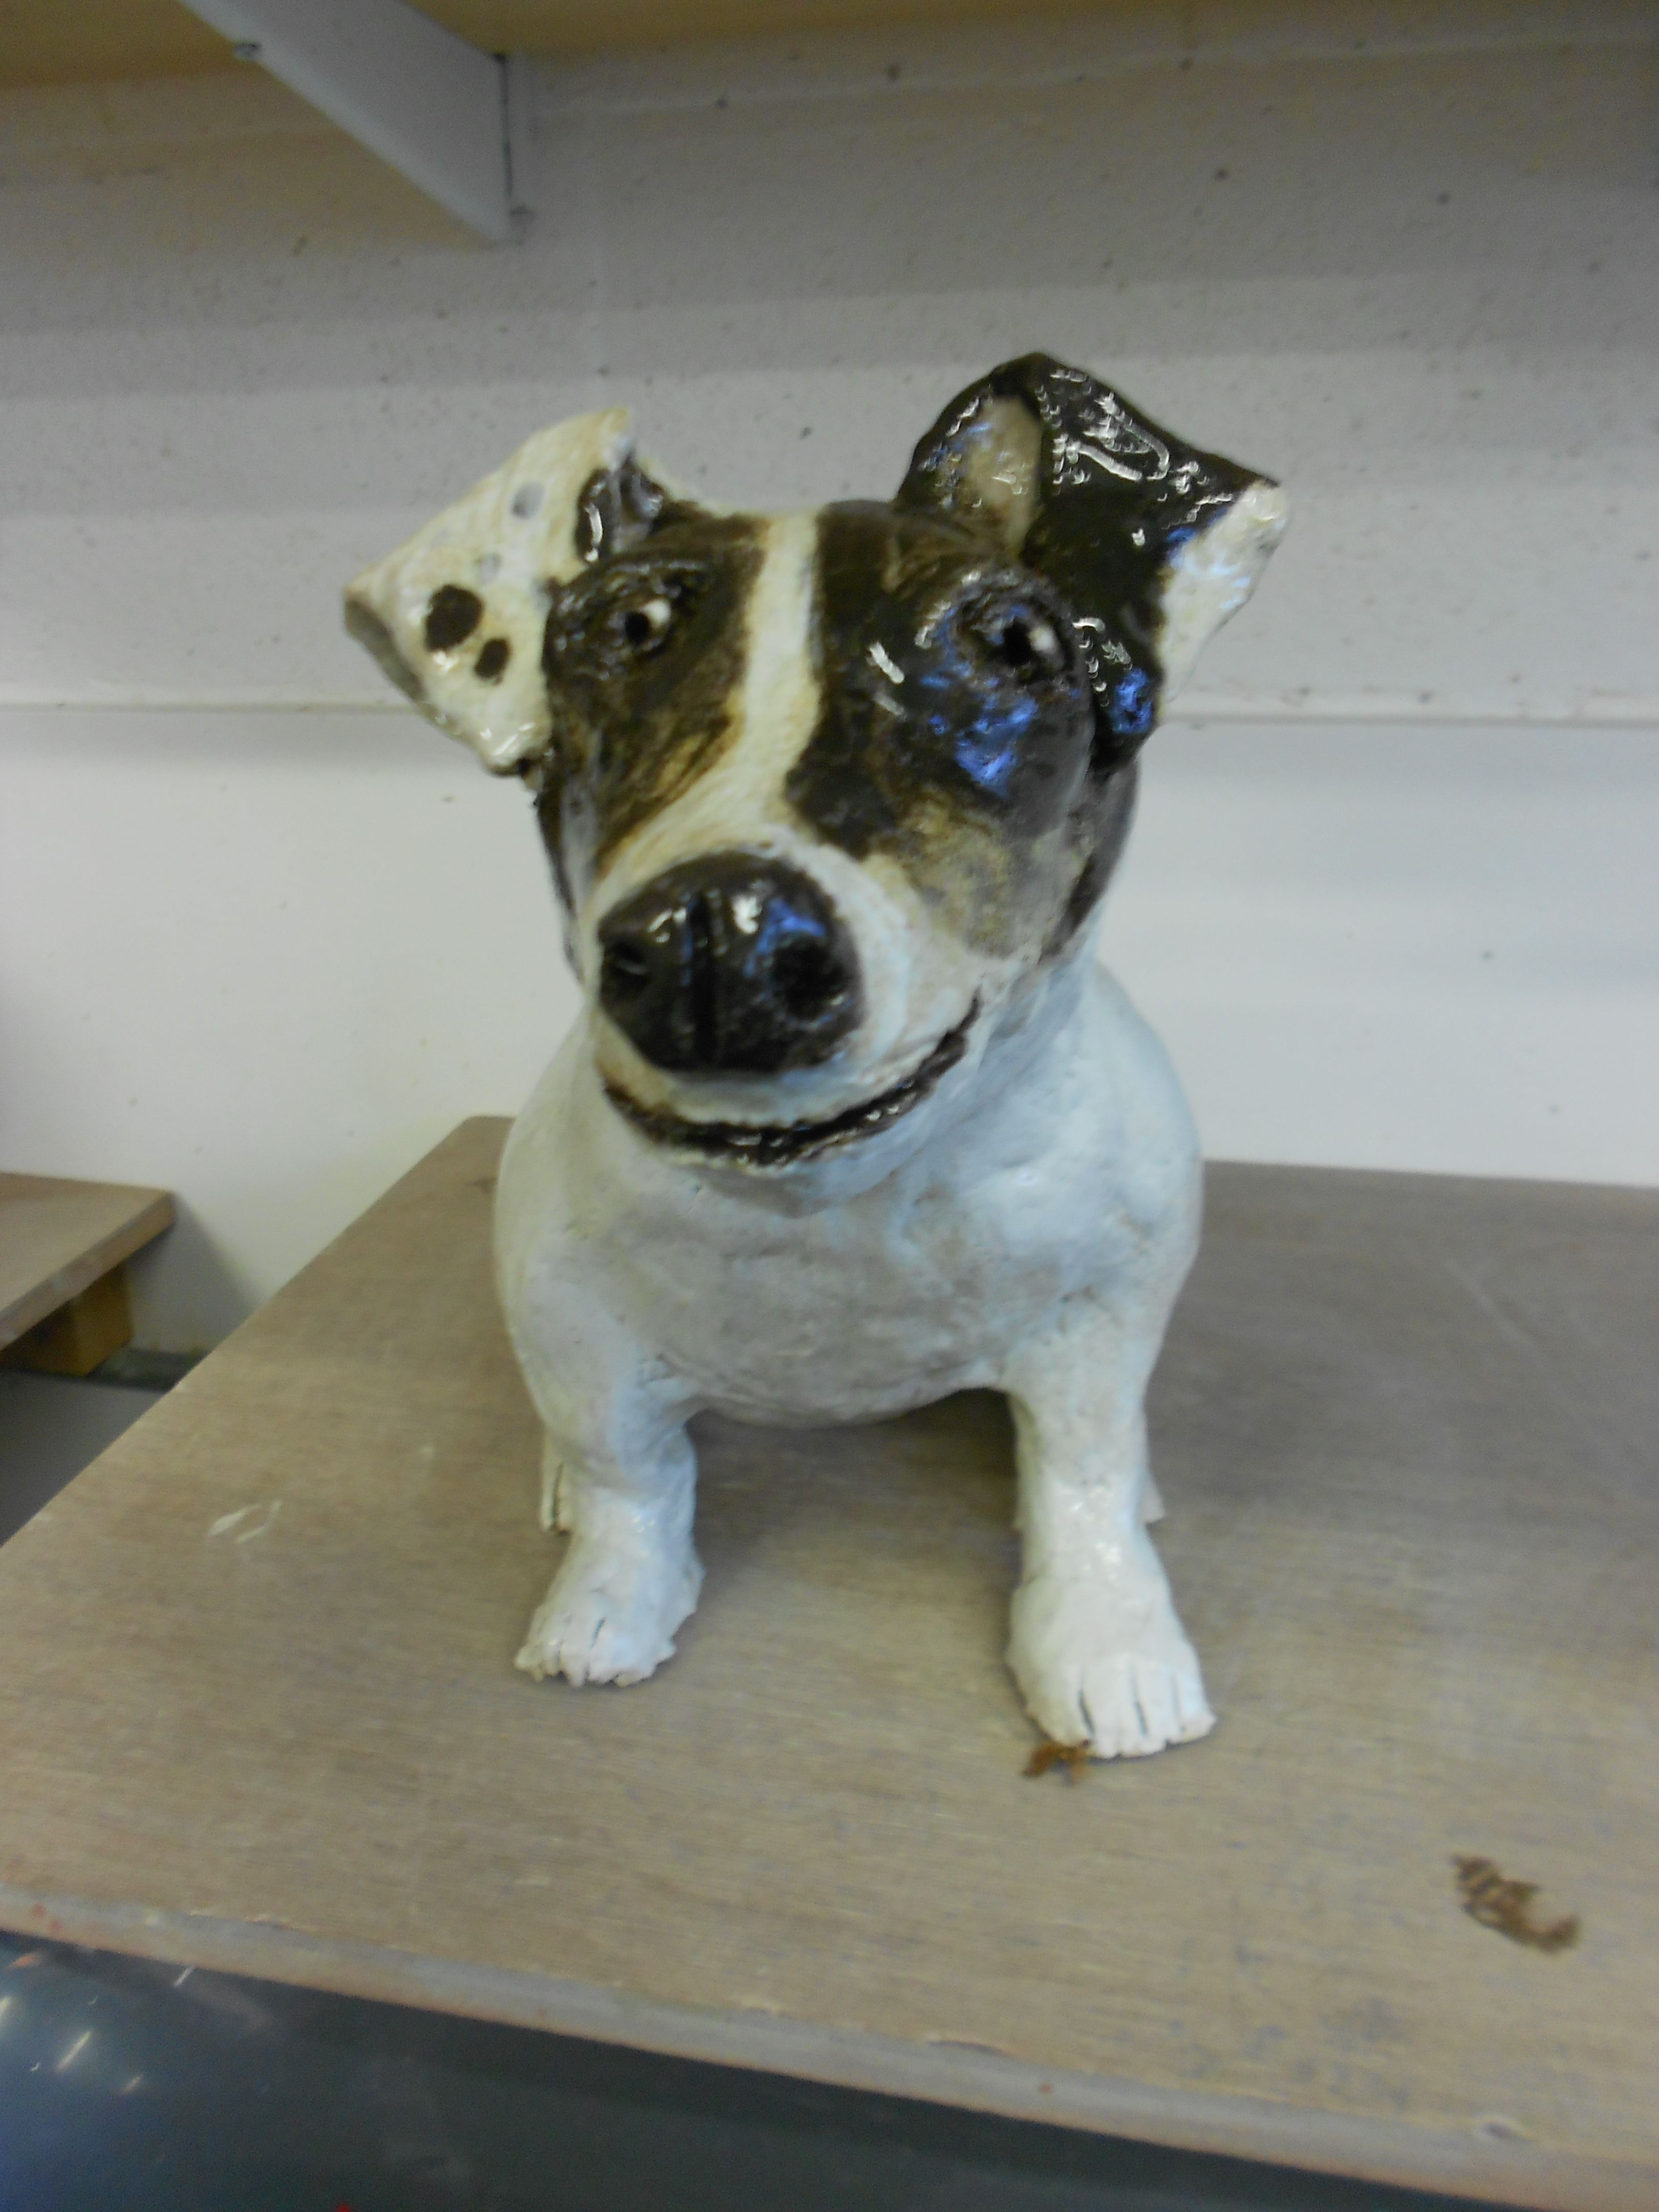 Life size ceramic Jack Russell